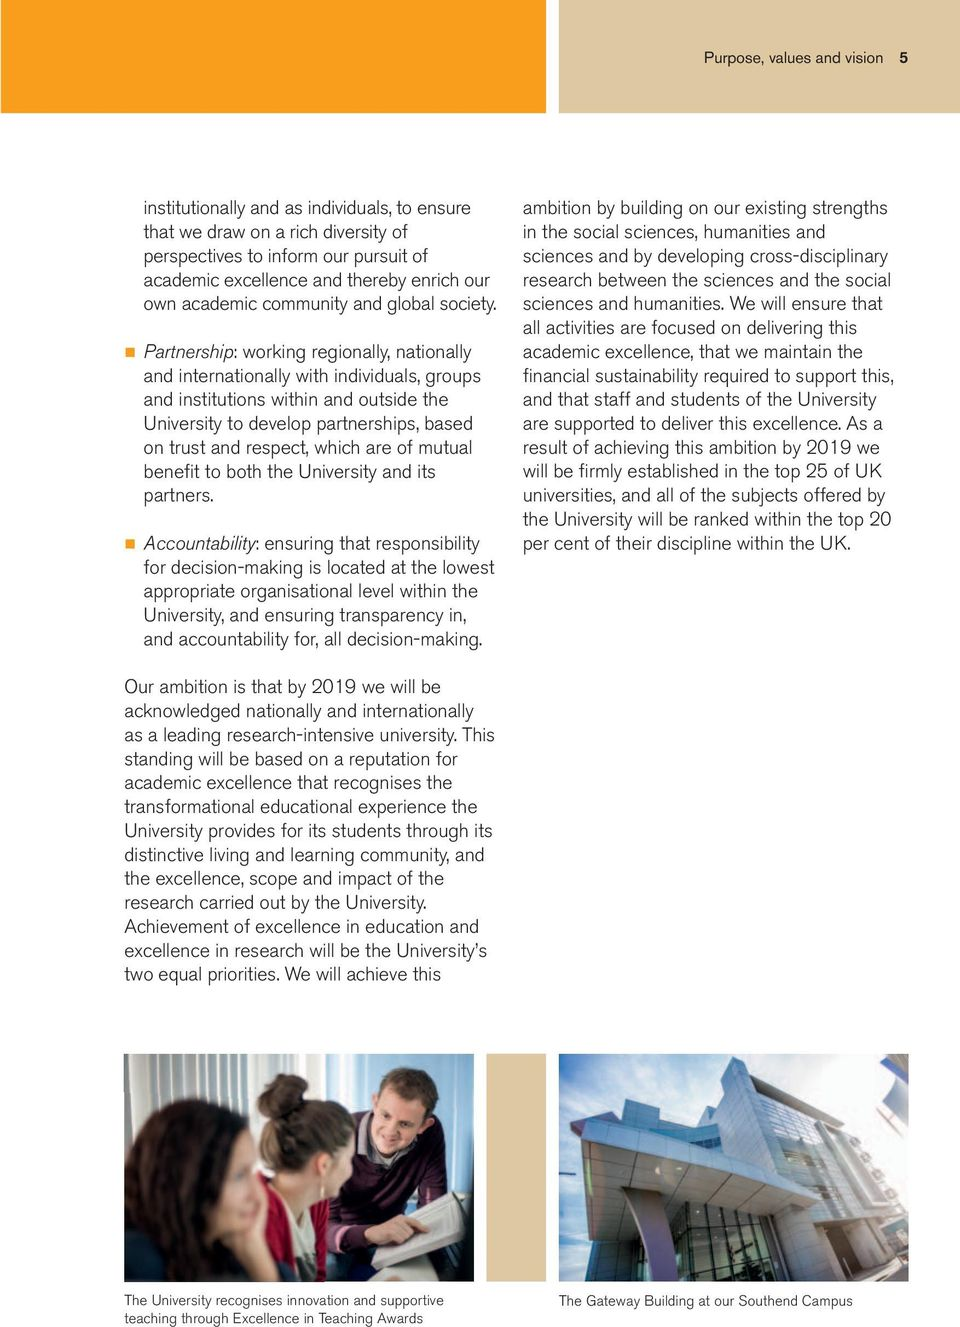 n Partnership: working regionally, nationally and internationally with individuals, groups and institutions within and outside the University to develop partnerships, based on trust and respect,